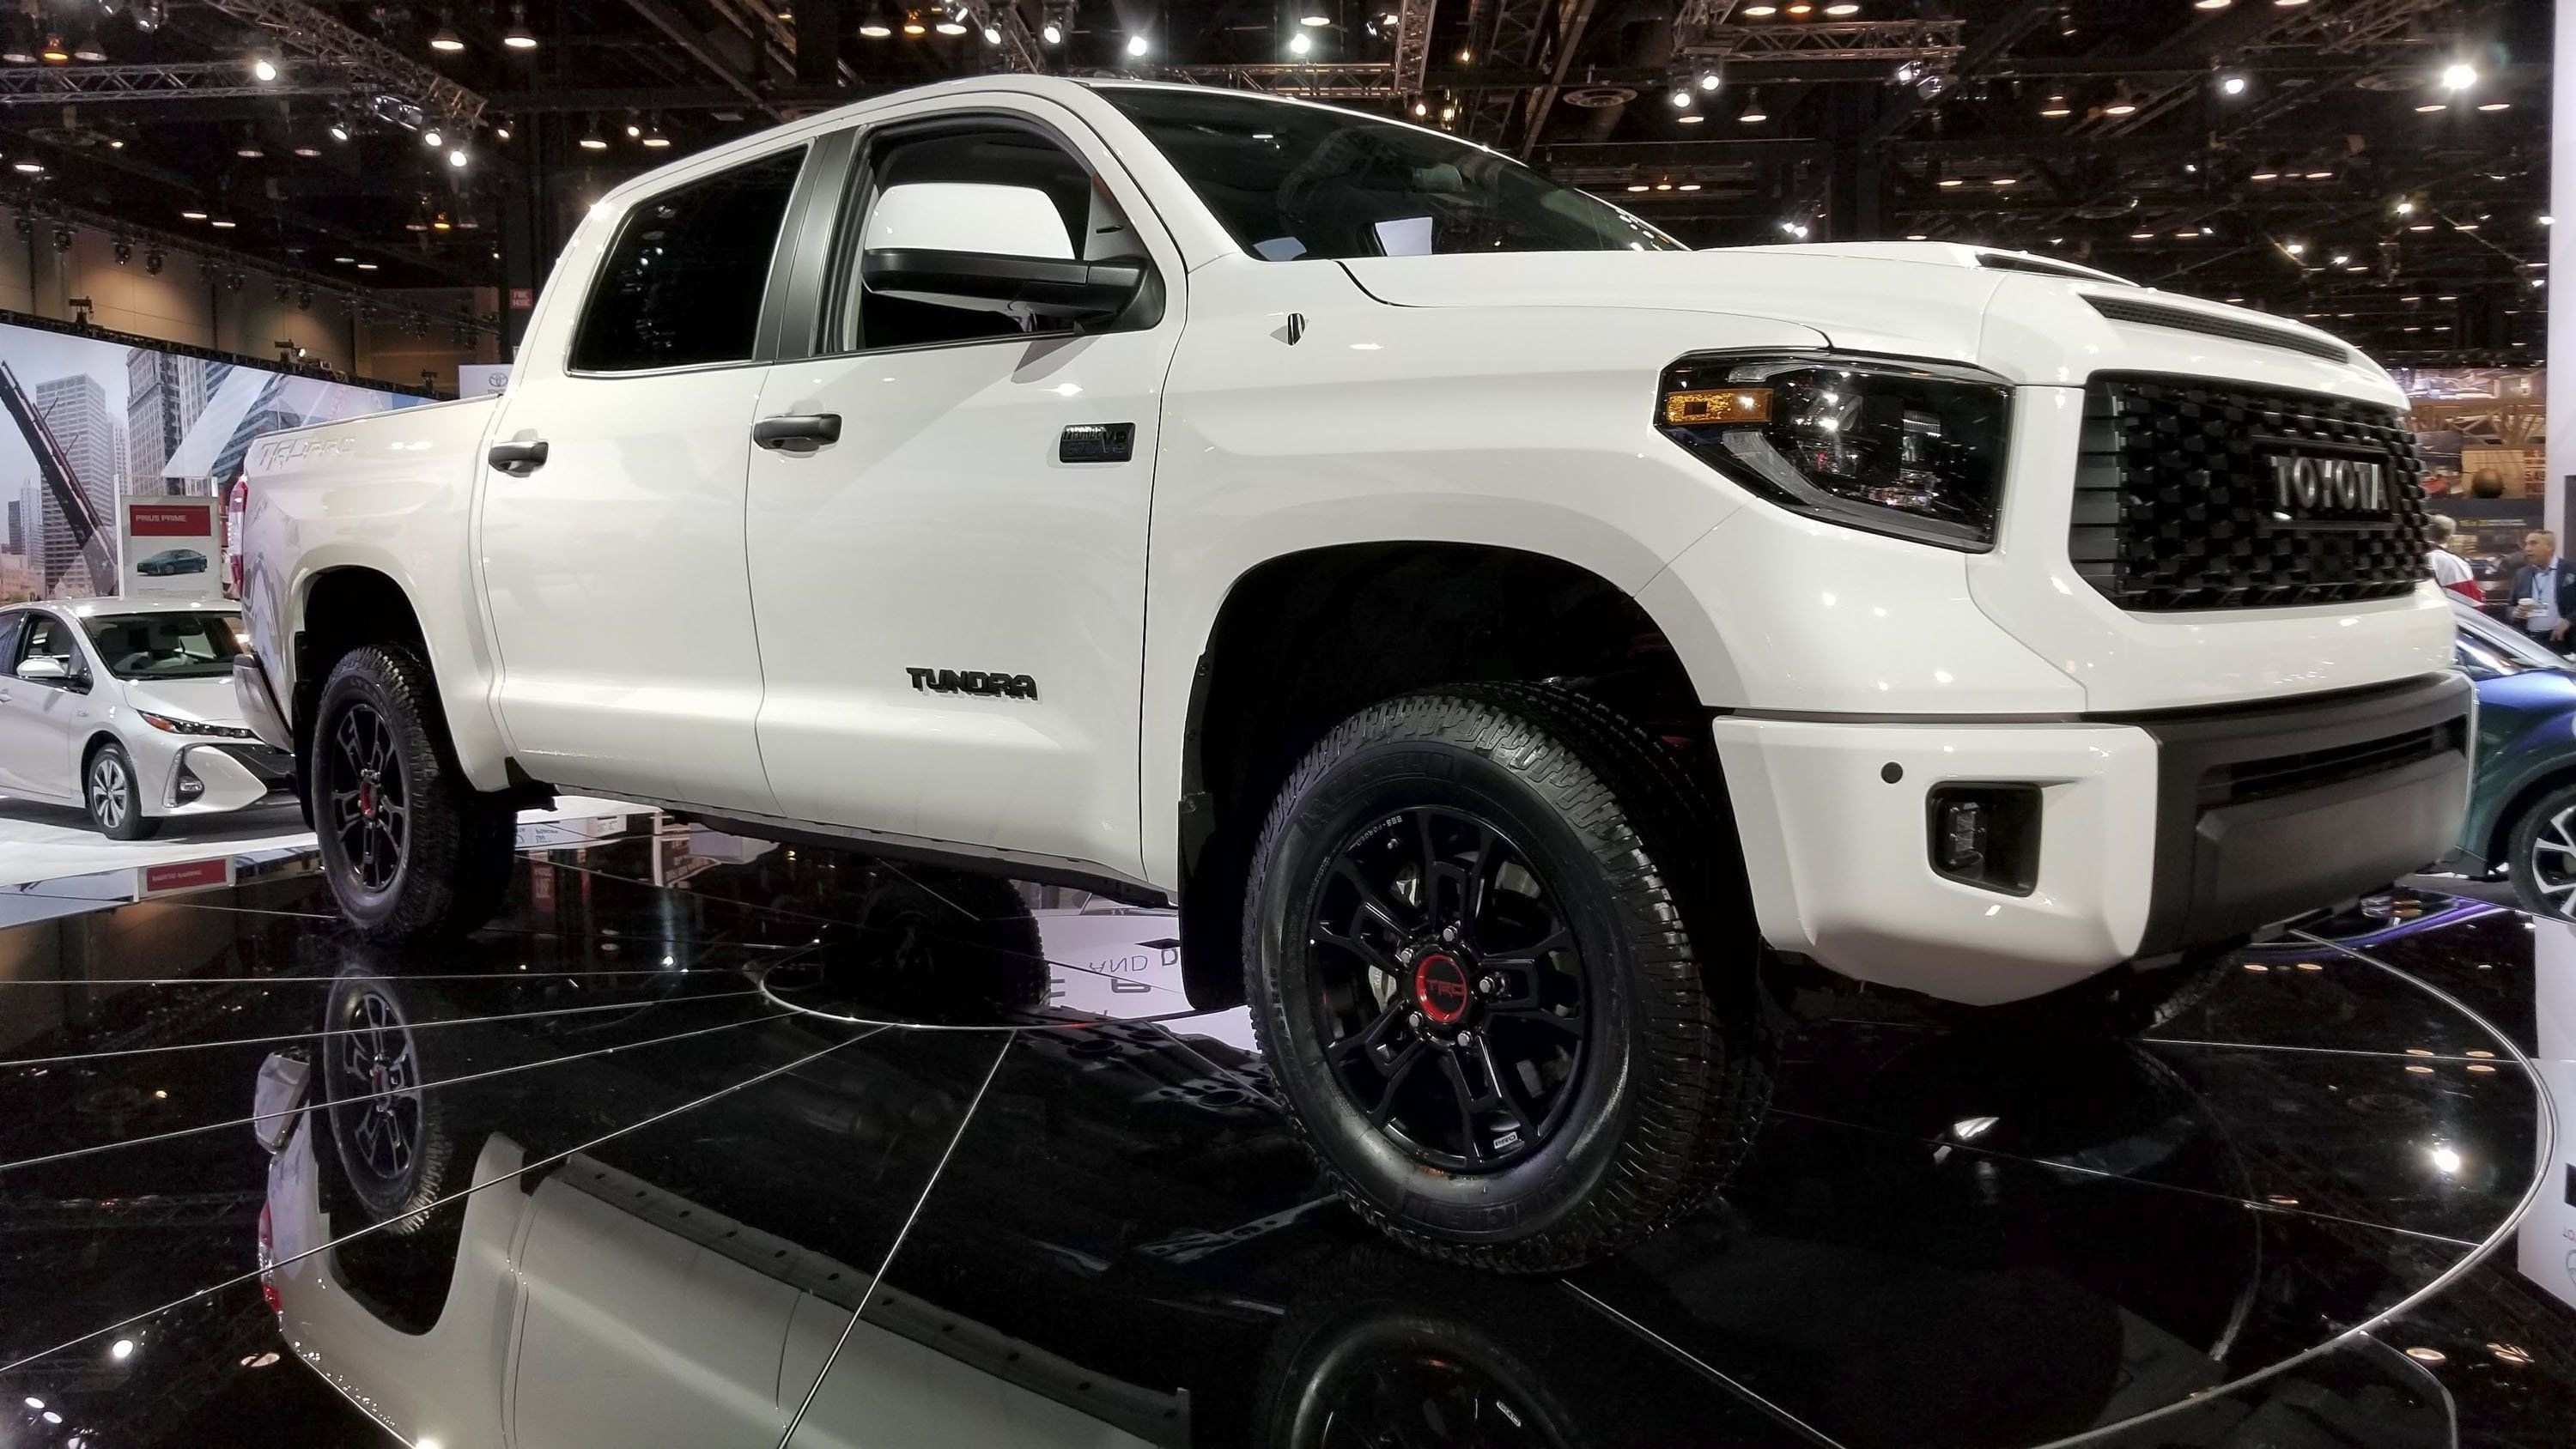 58 New Best Toyota 2019 Tundra Diesel Redesign Picture for Best Toyota 2019 Tundra Diesel Redesign